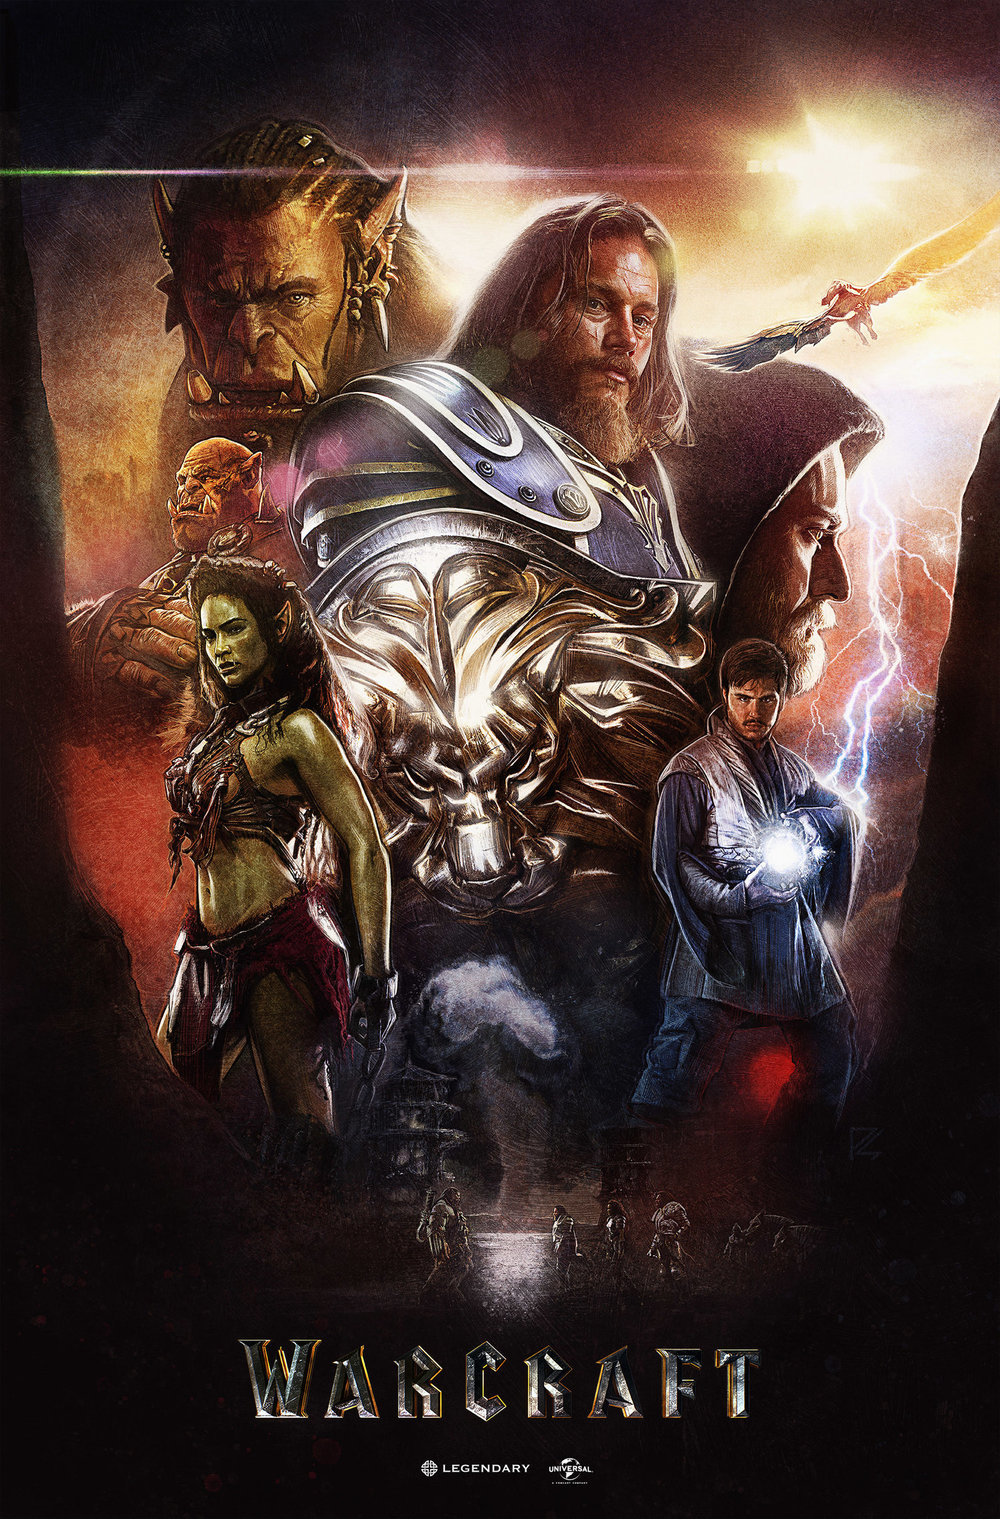 PS-000-WarCraft-to03b_27x40_merged3_FINAL_72-2.jpg